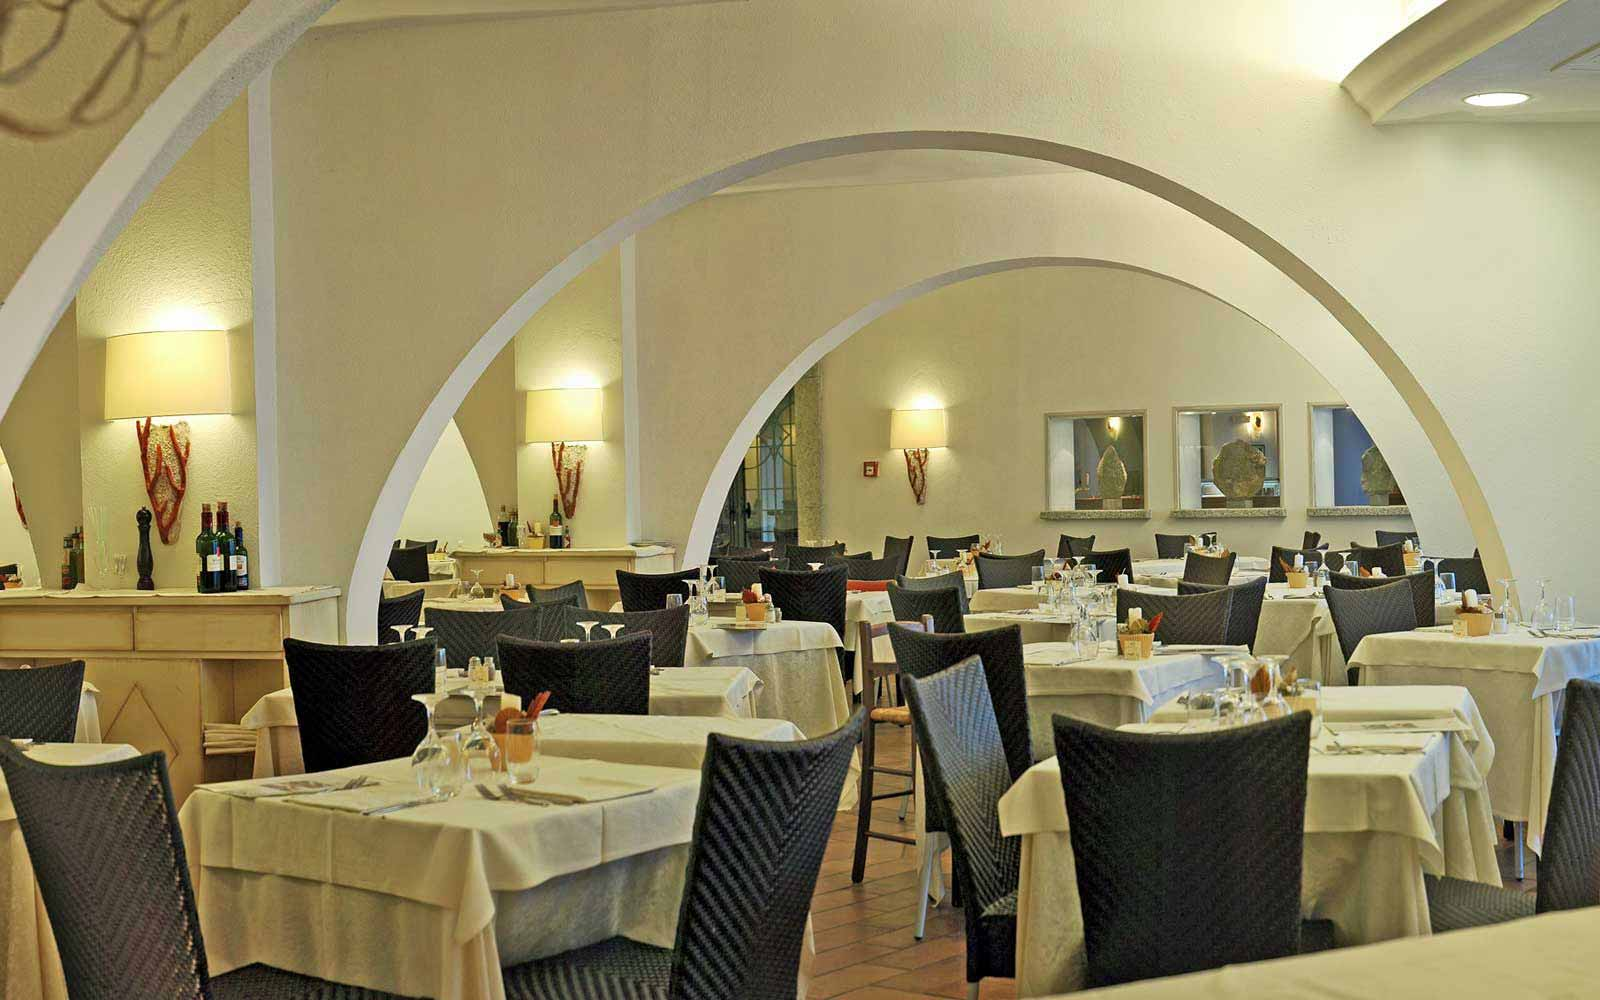 I Coralli Restaurant at Hotel Flamingo